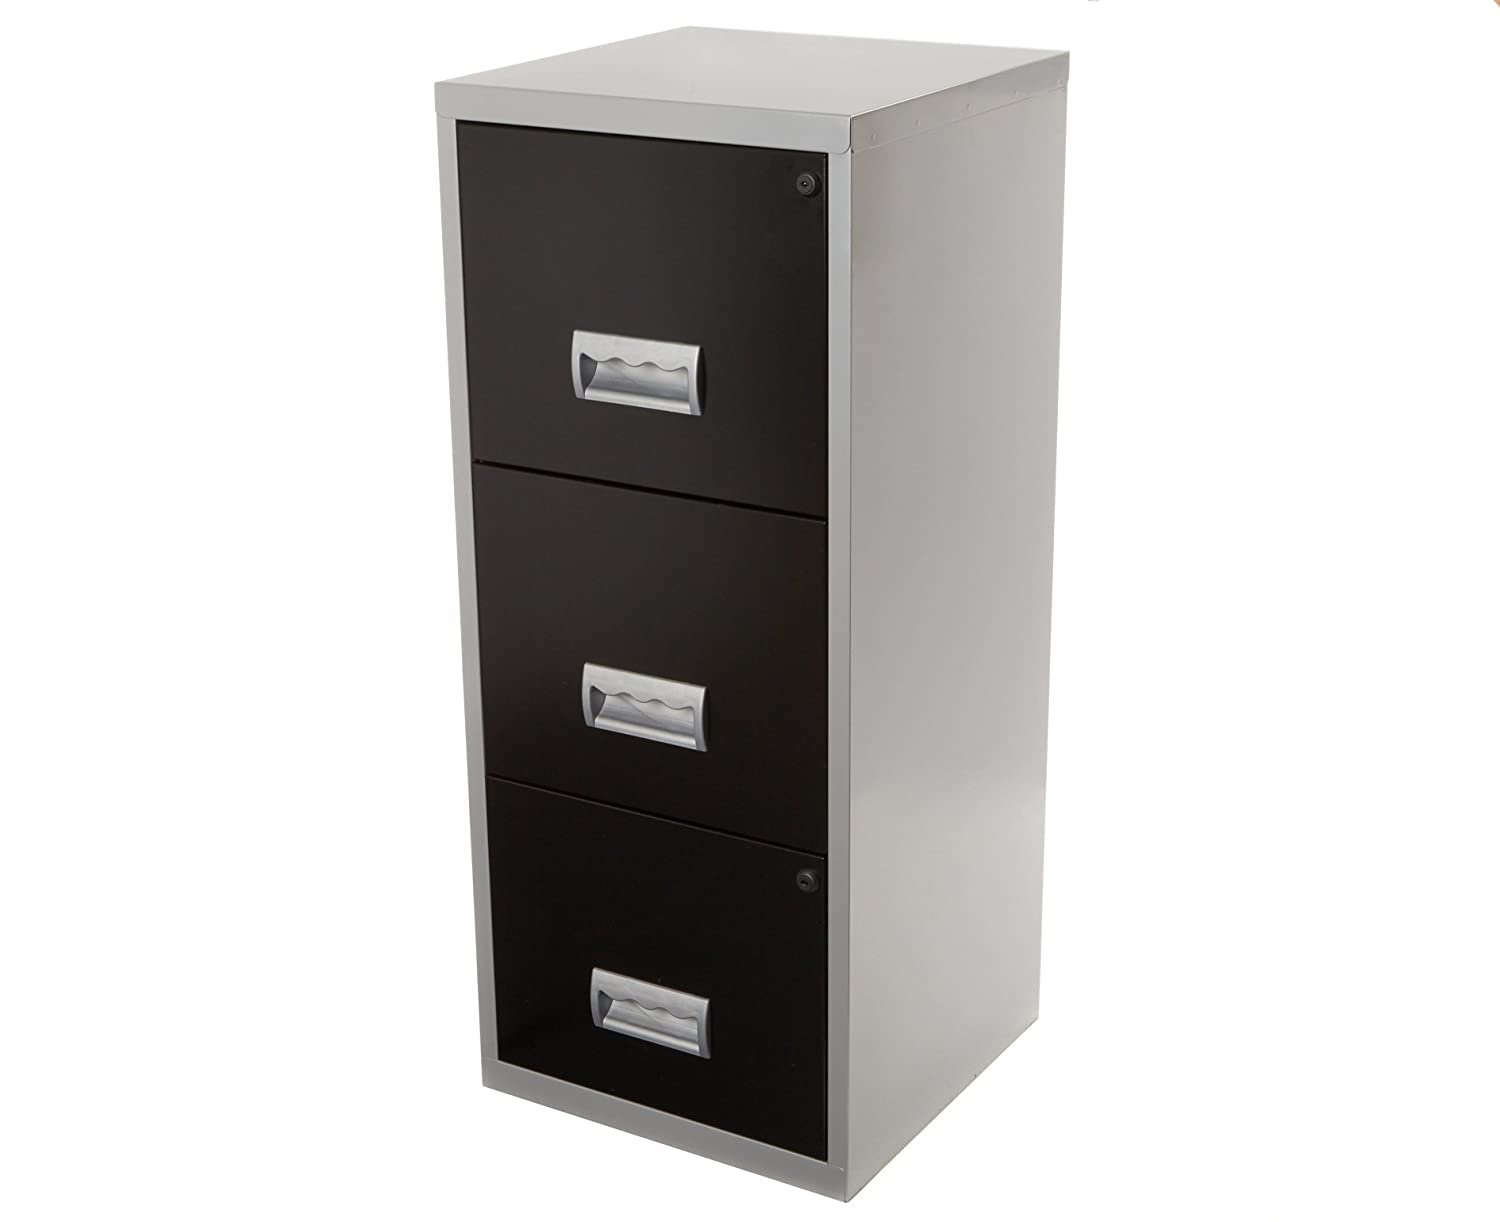 Pierre Henry A4 3 Drawer Maxi Filing Cabinet Silver and Black - Color: Silver/Black